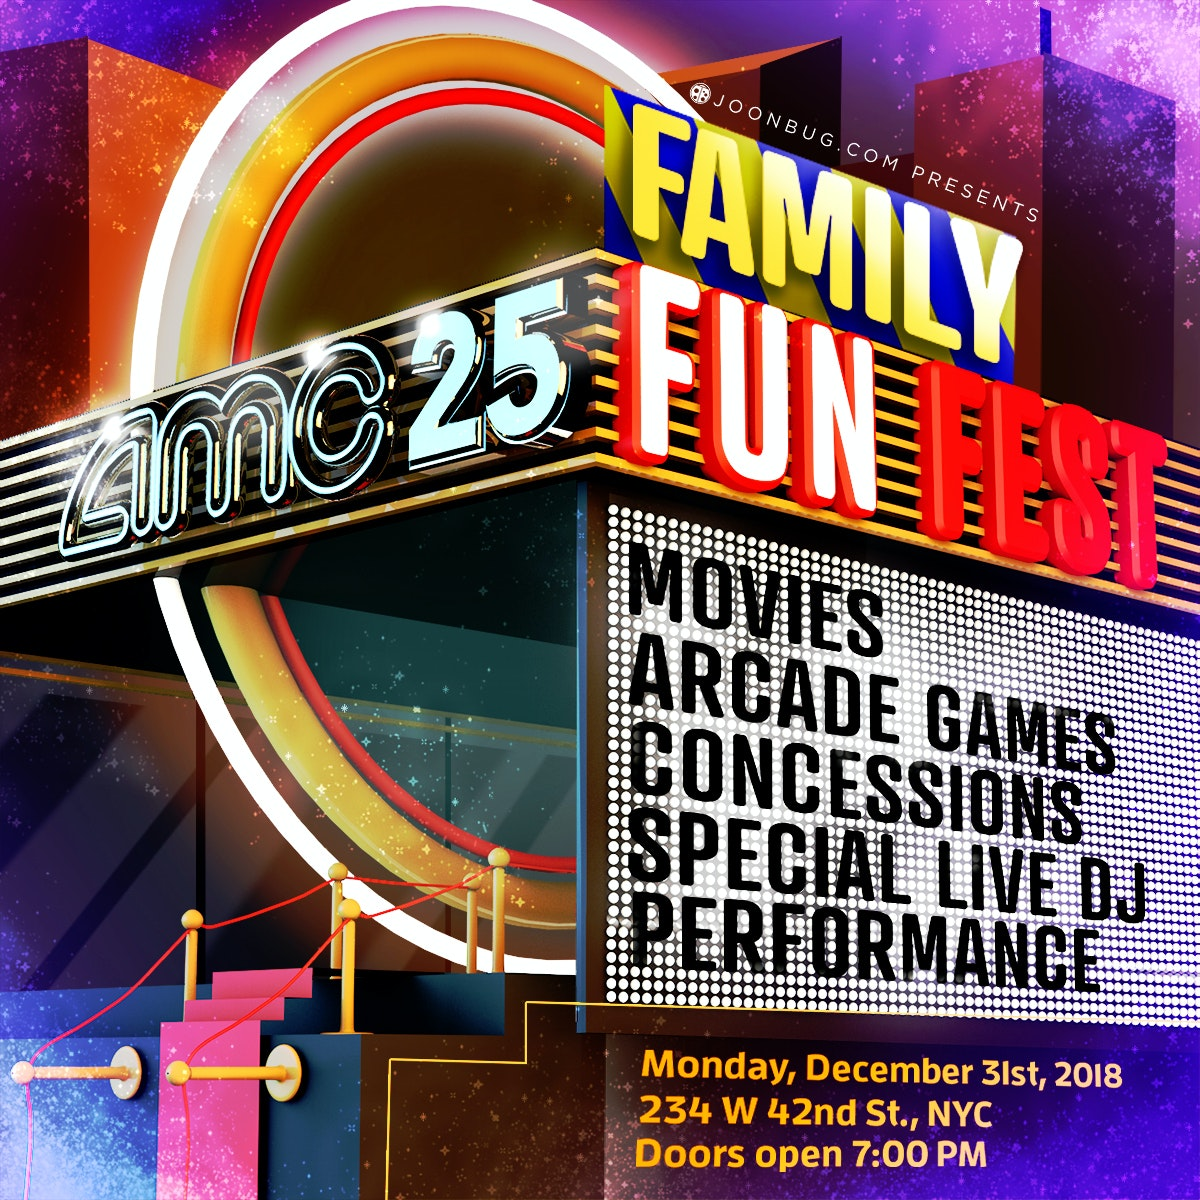 AMC NYE Family Fun Fest